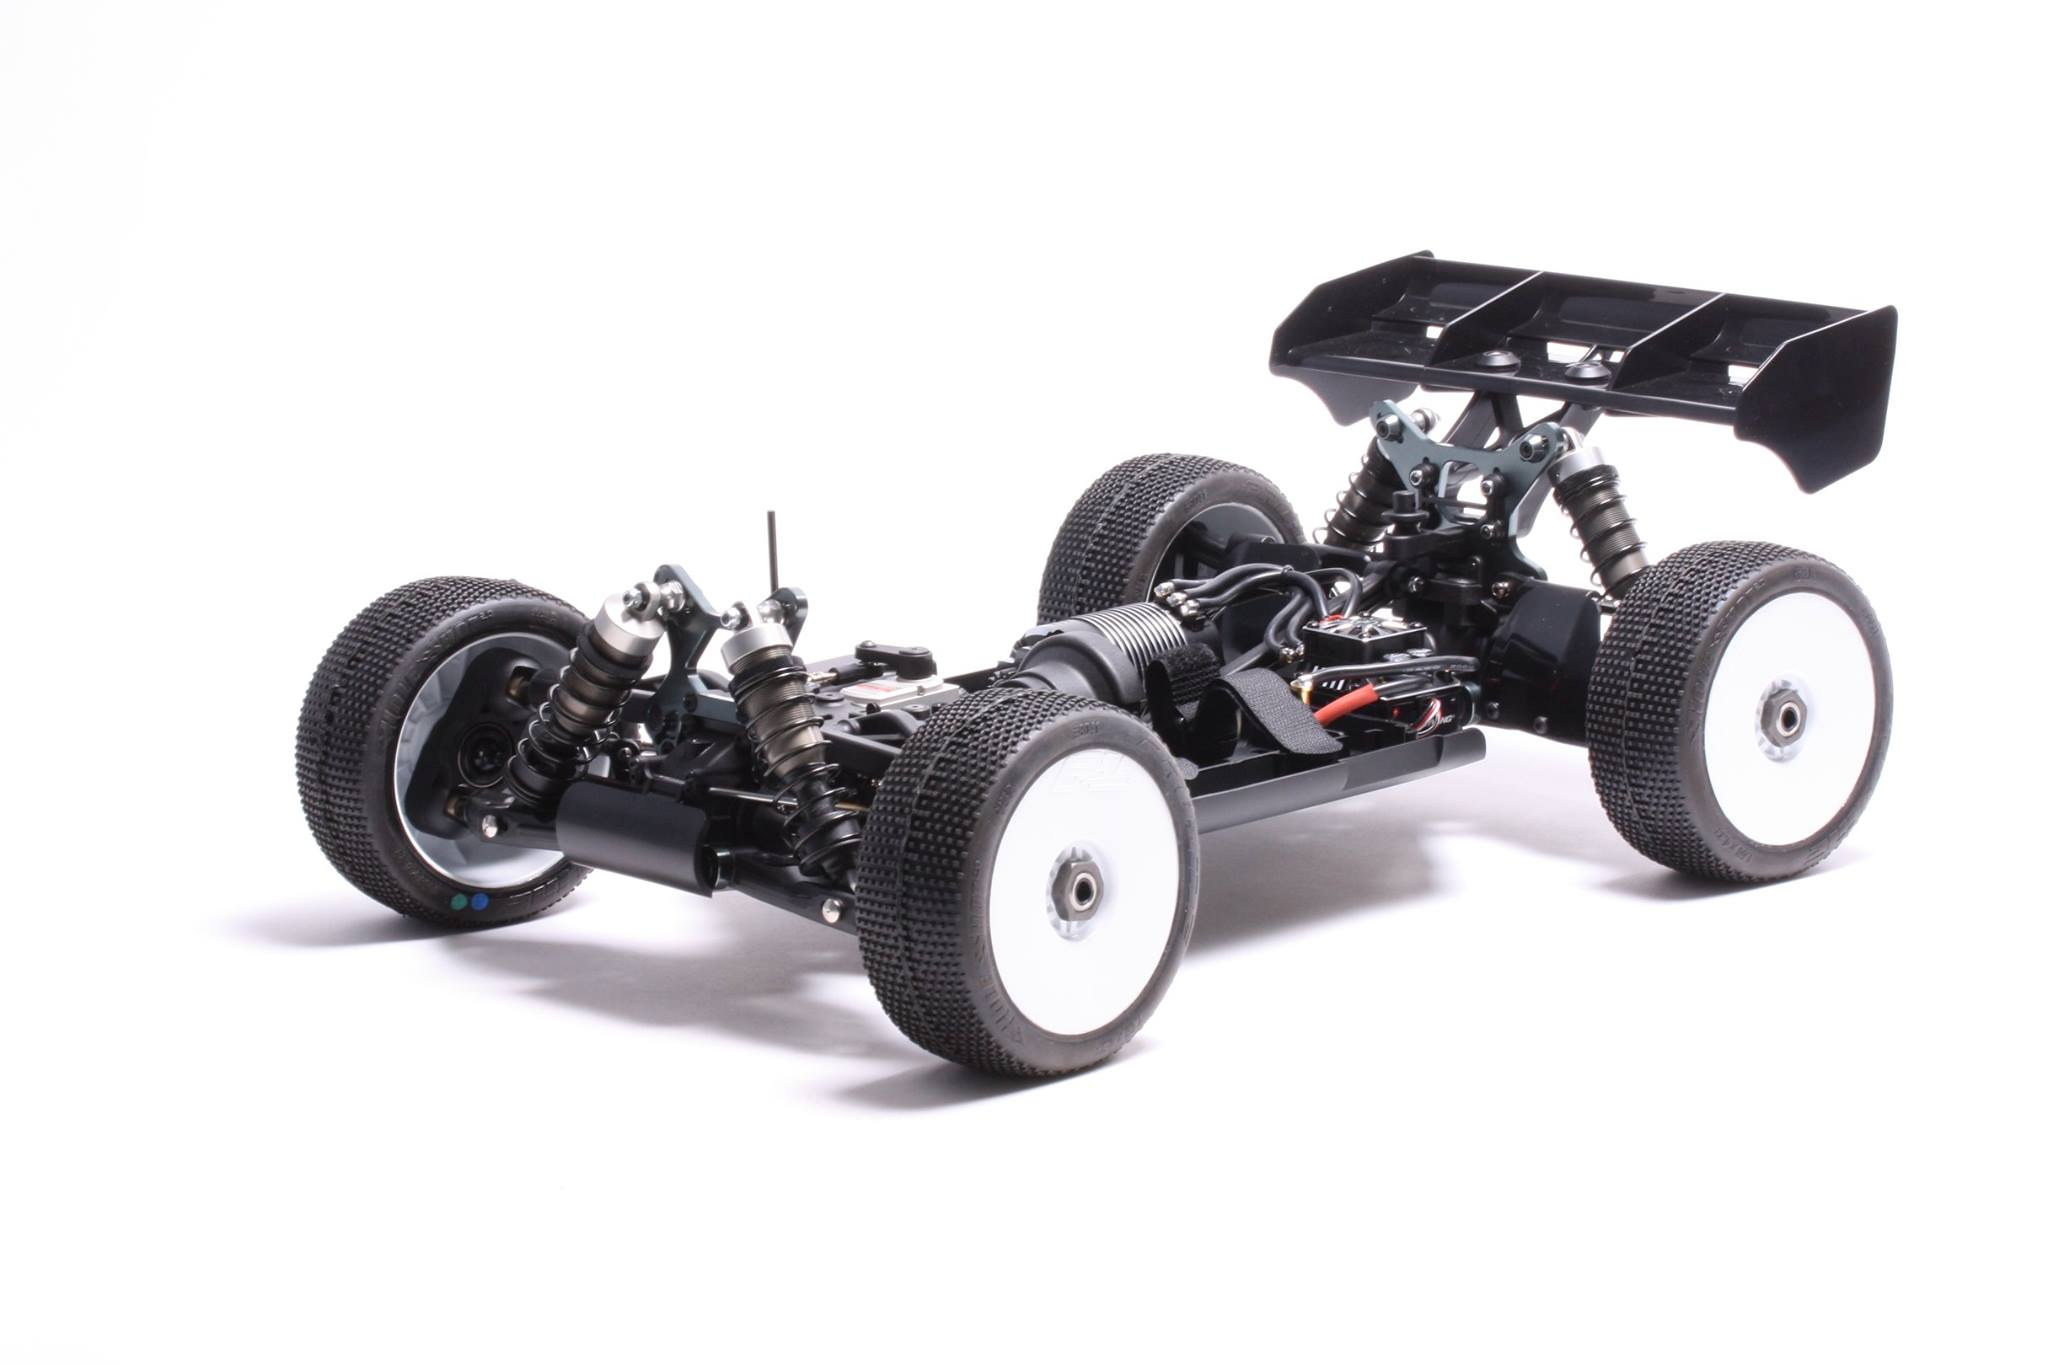 Mugen MBX8 ECO 1/8 Electric Off-Road Buggy Kit